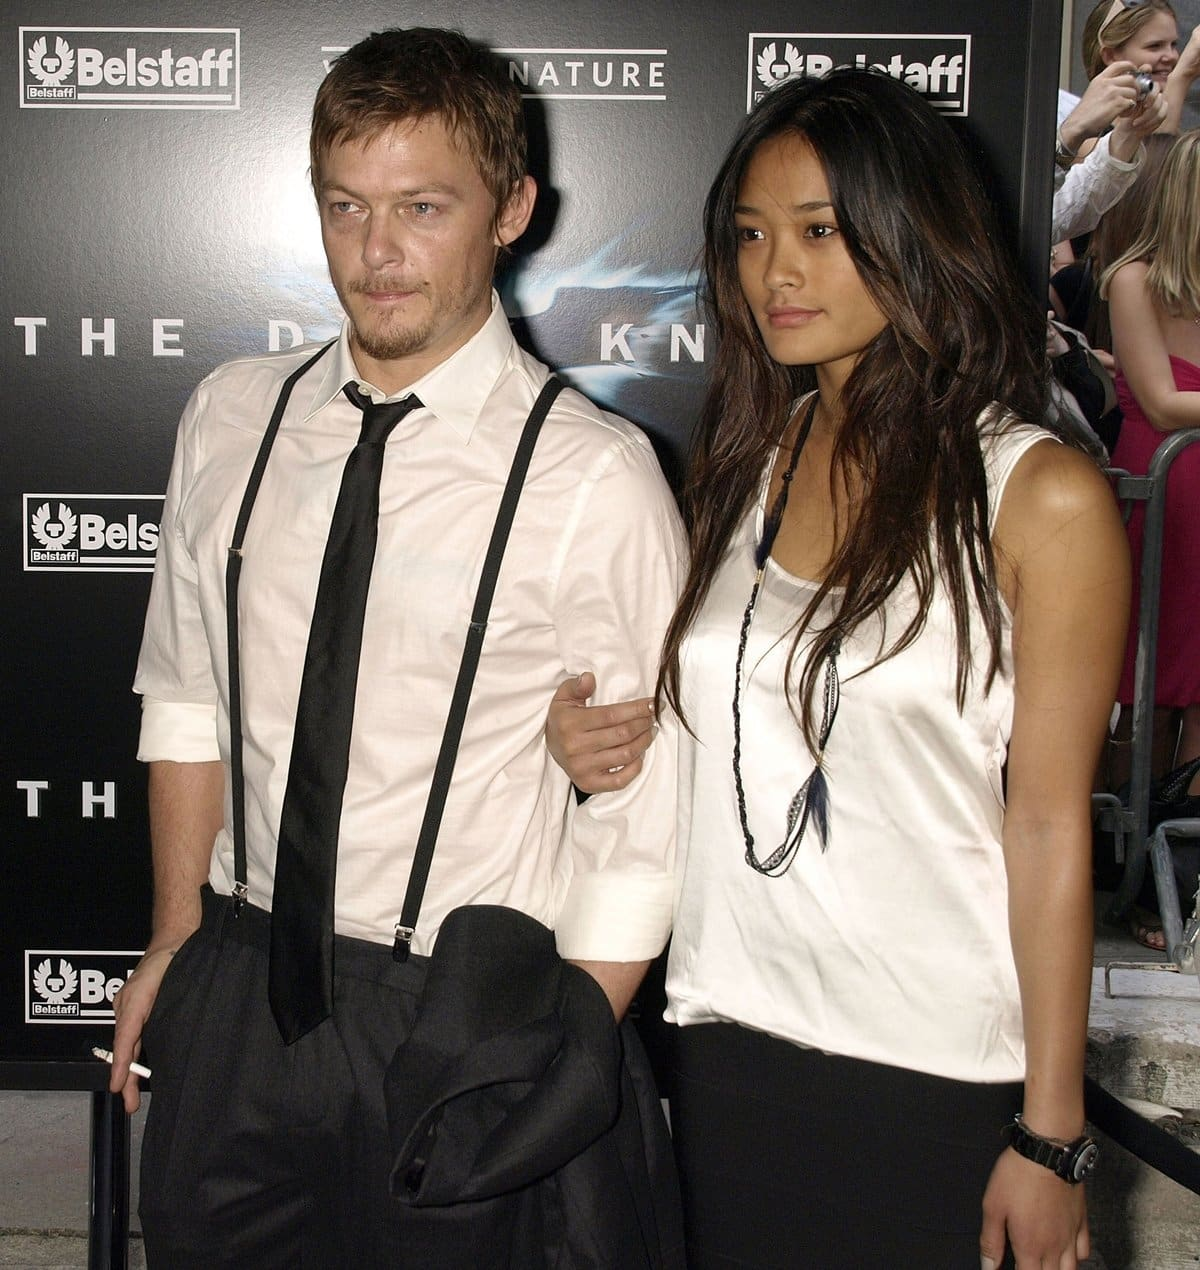 Model Jarah-Evelyn Makalapua Mariano and Norman Reedus dated from April 2008 to 2009